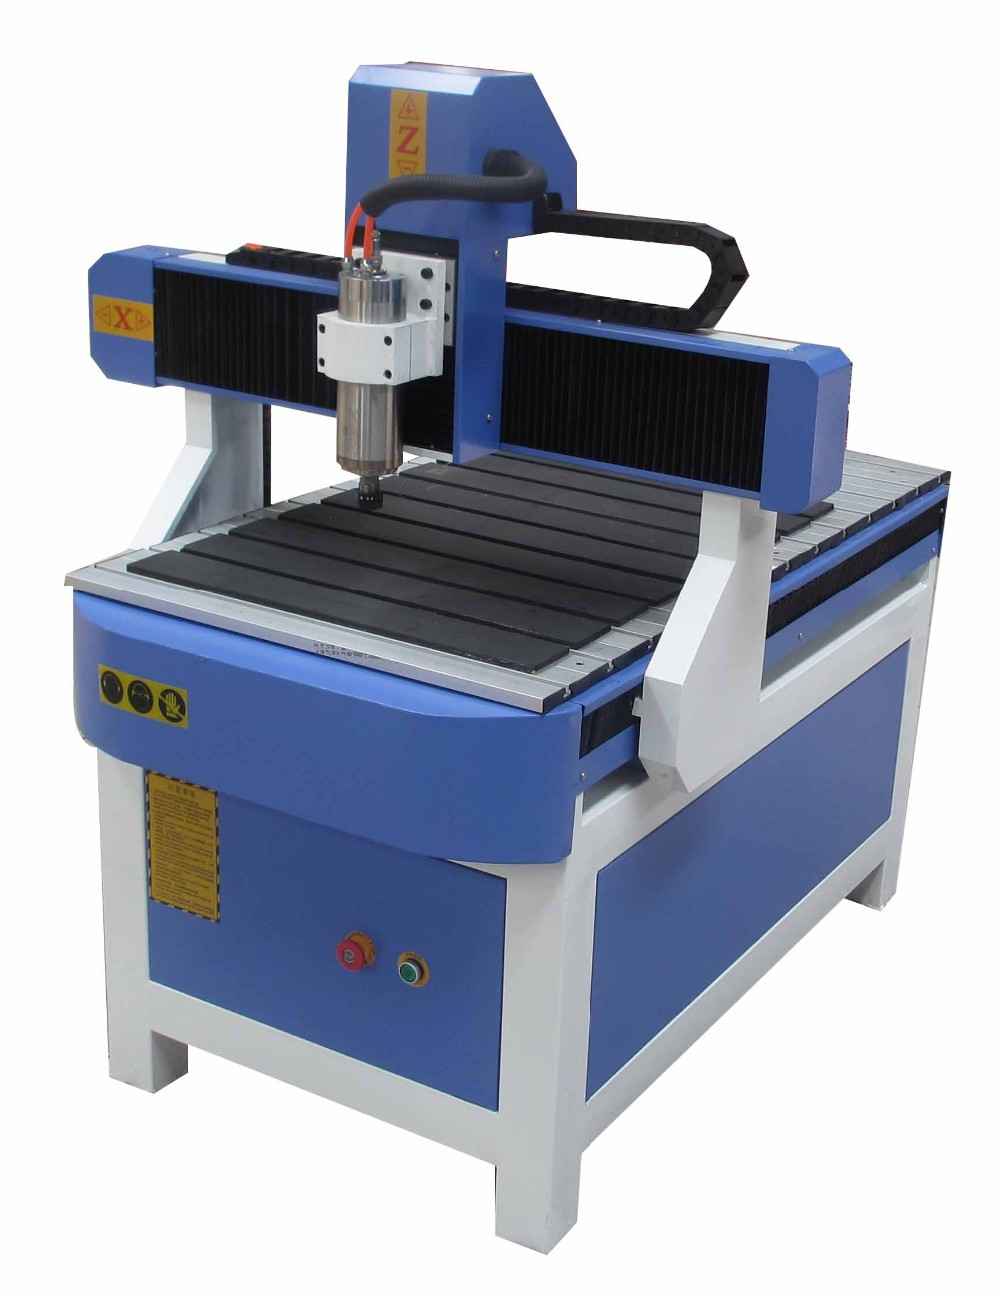 china protable advertising 4 axis wood carving 3d woodworking cnc router 6090 price